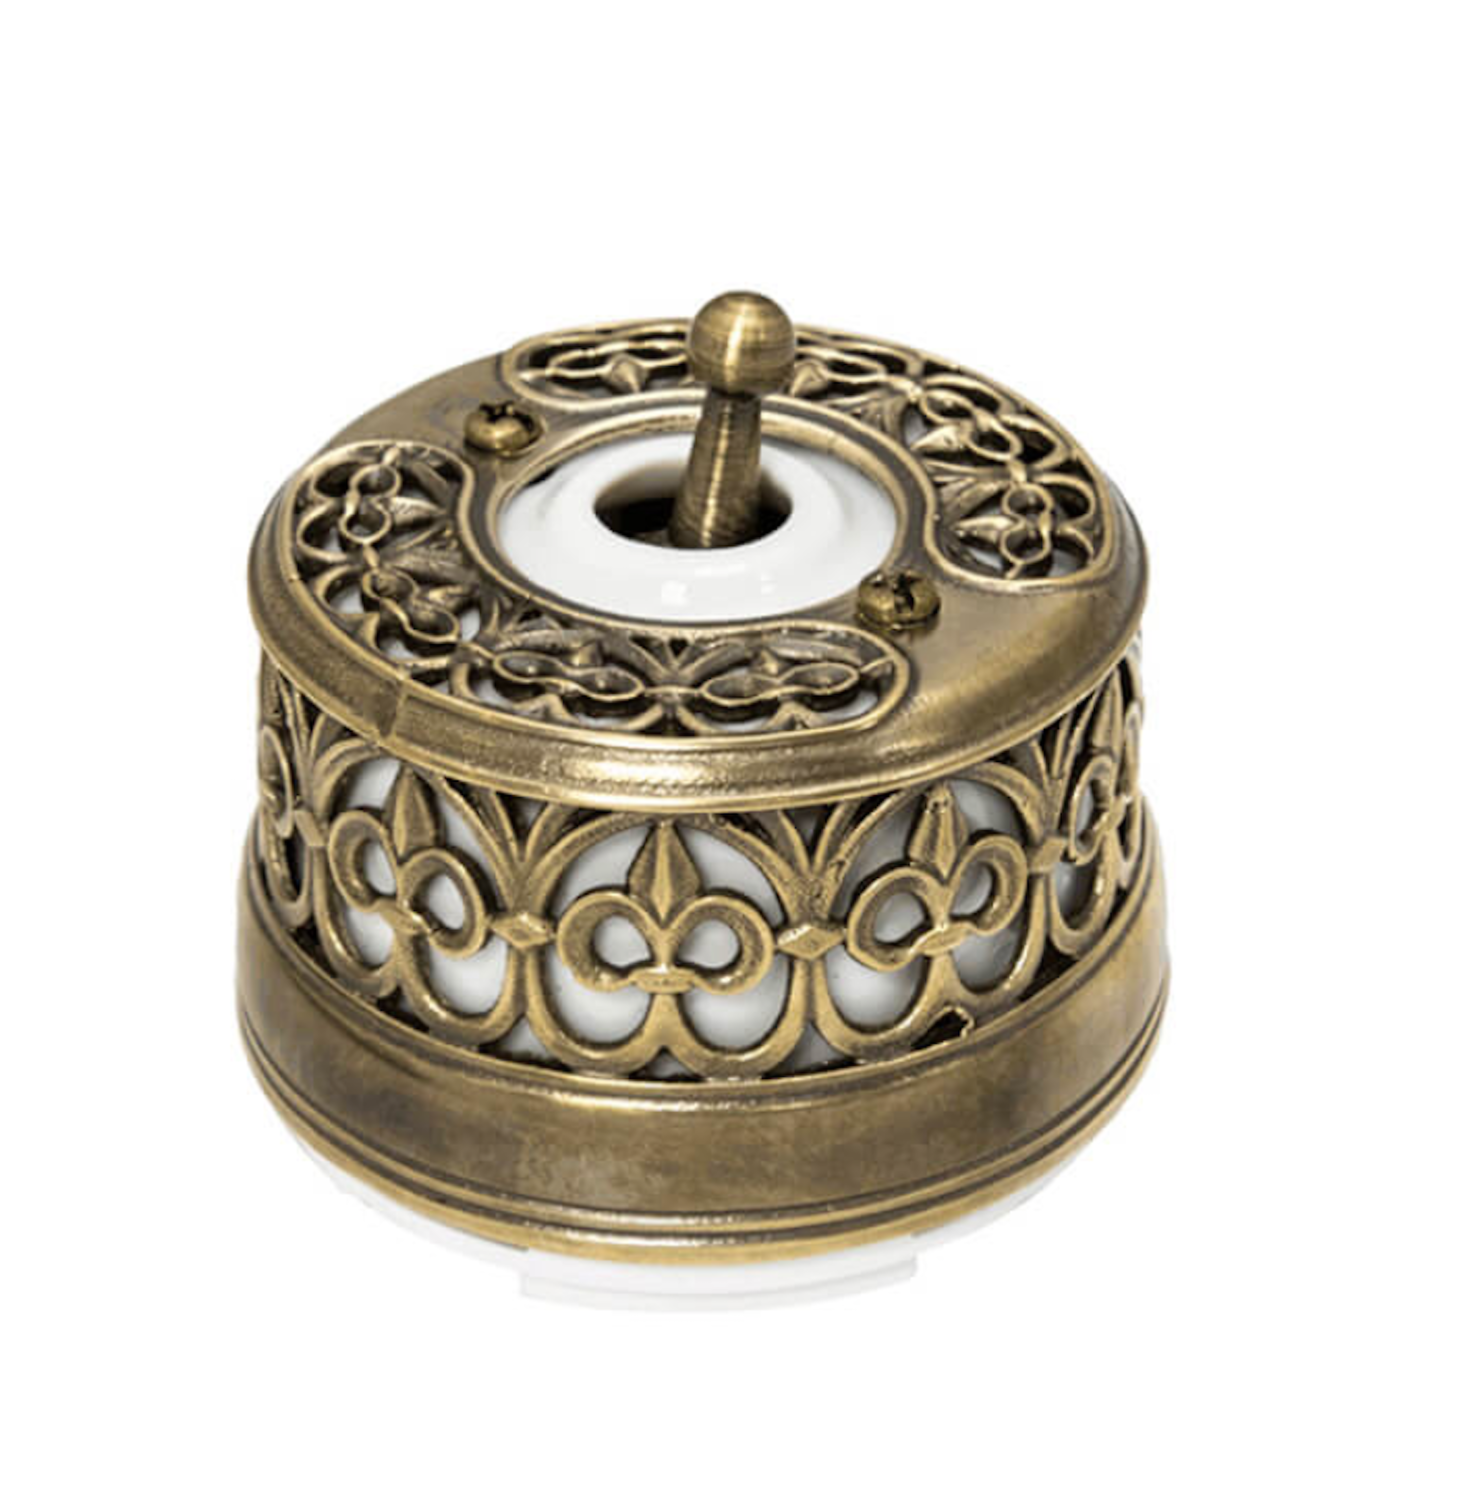 Toggle wall lighting switch in aged bronze & porcelain